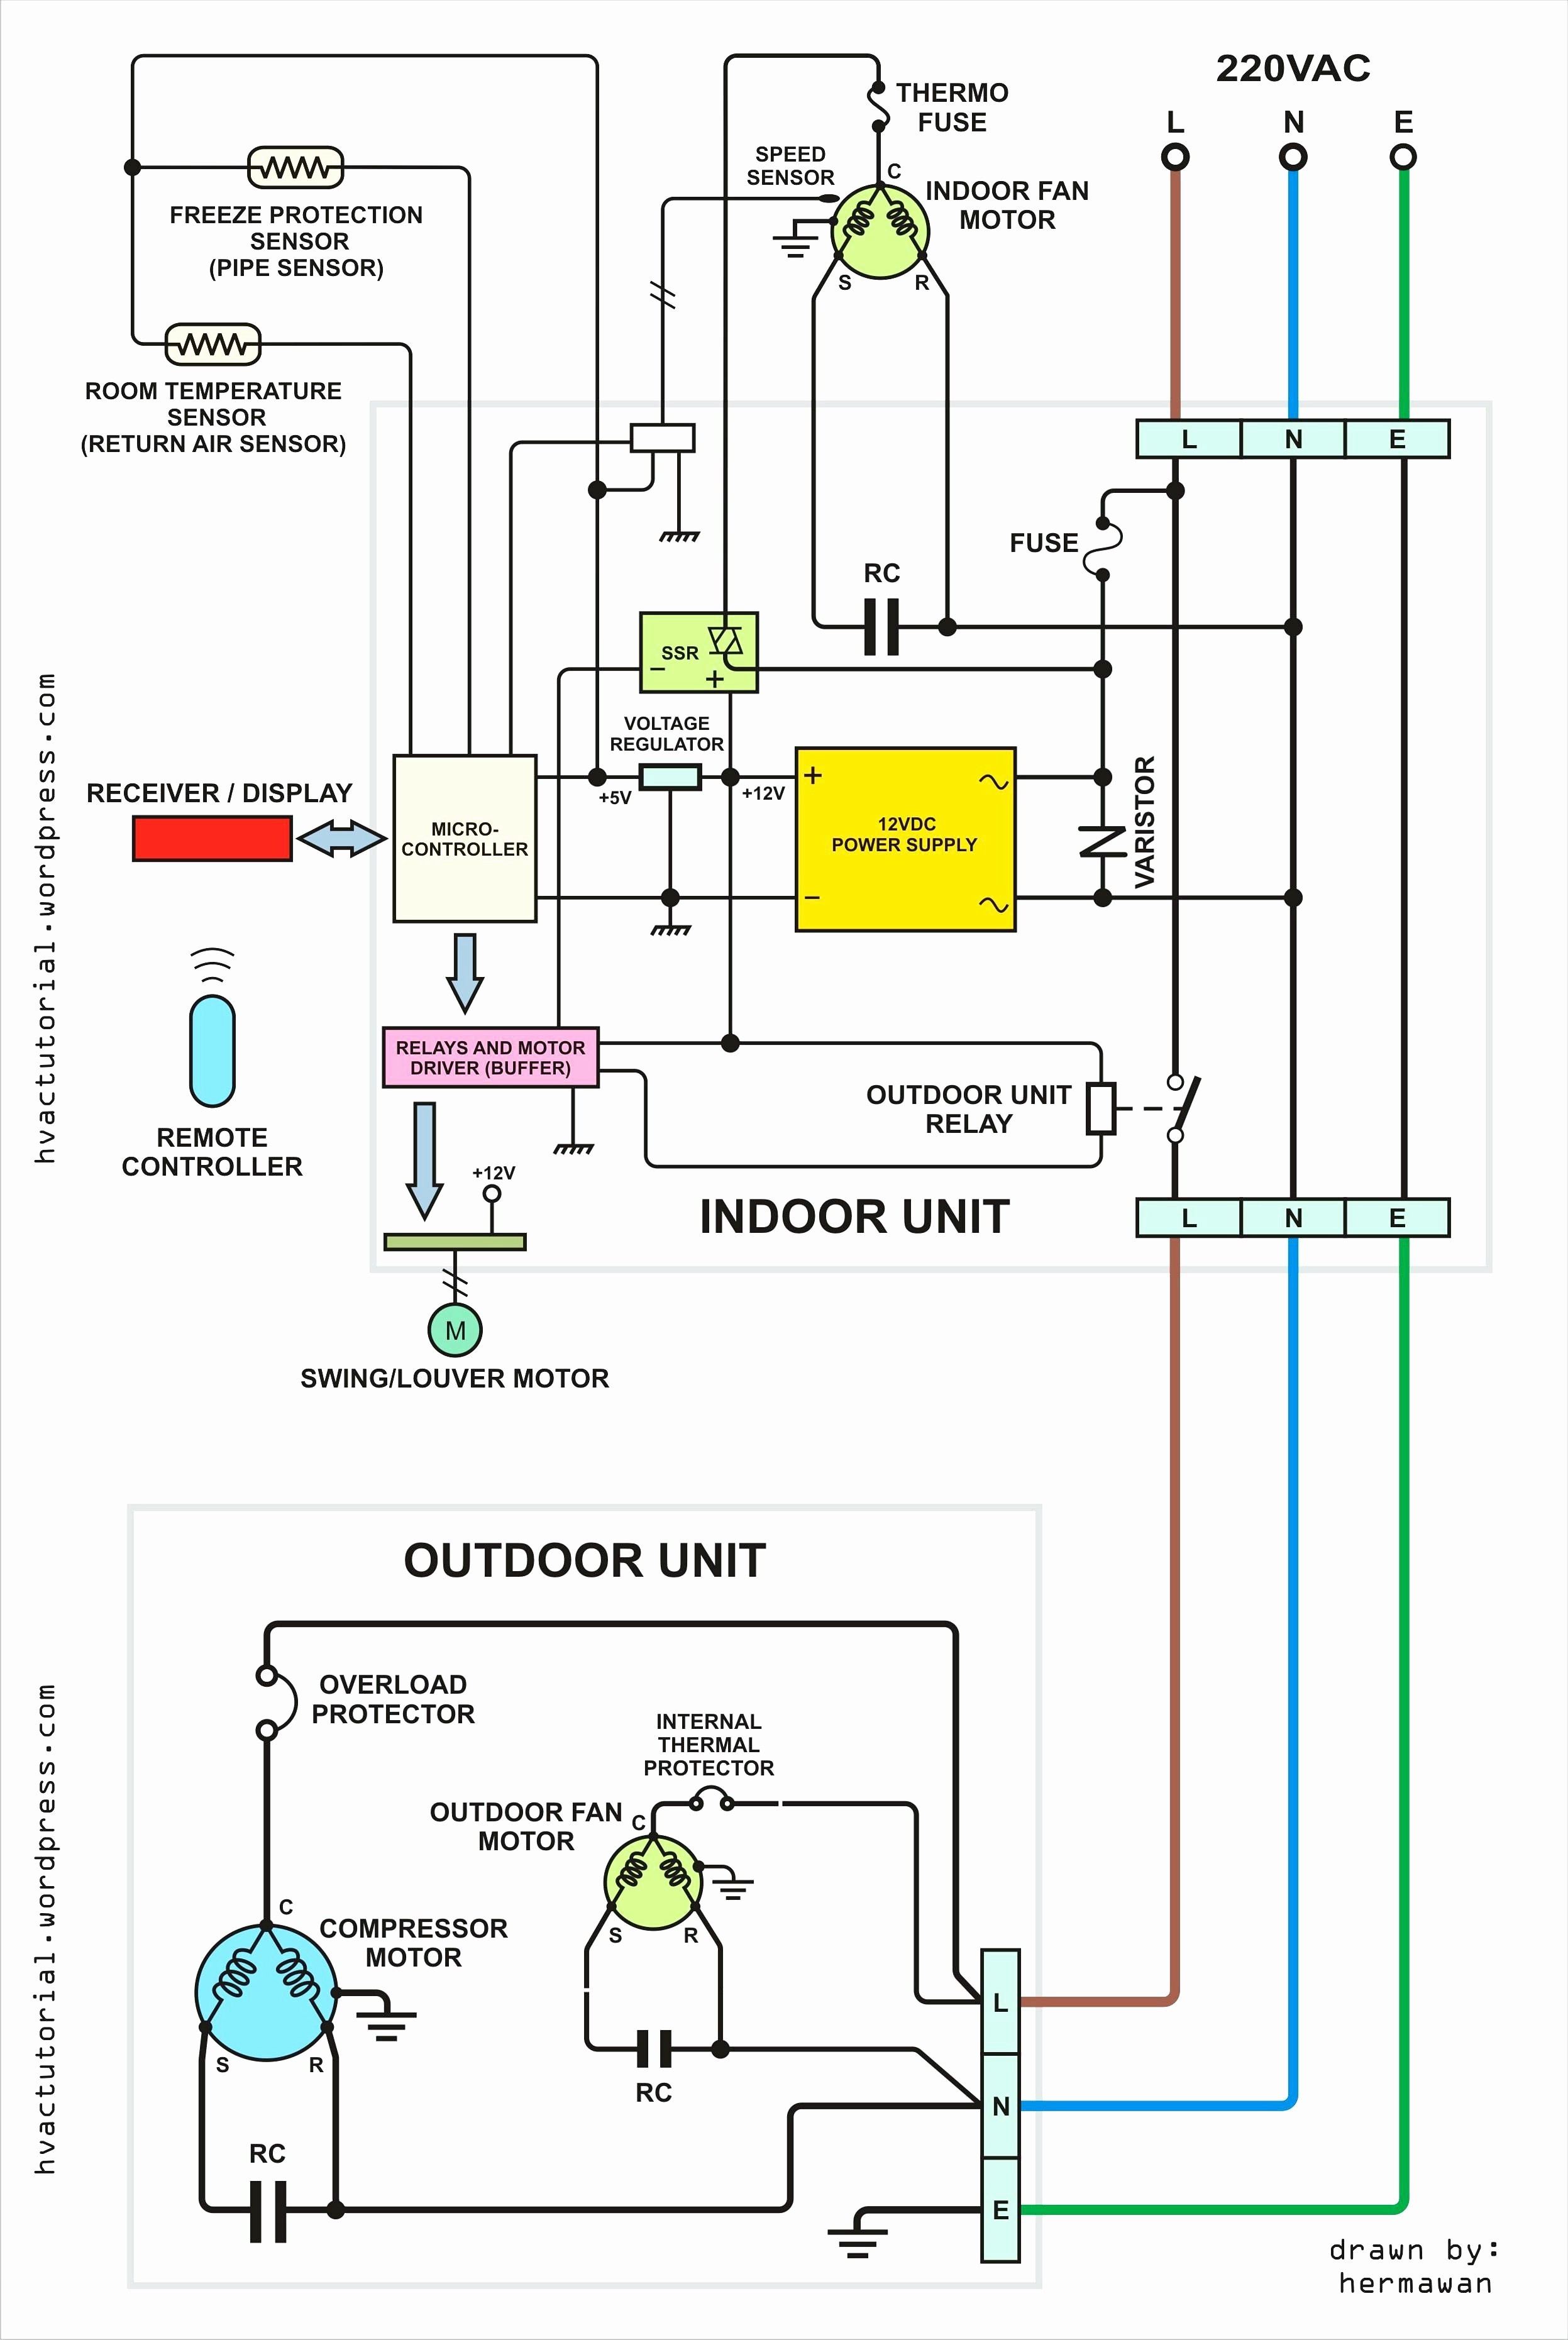 house wiring diagram in hindi johnson outboard ignition ipad 4 schematic image